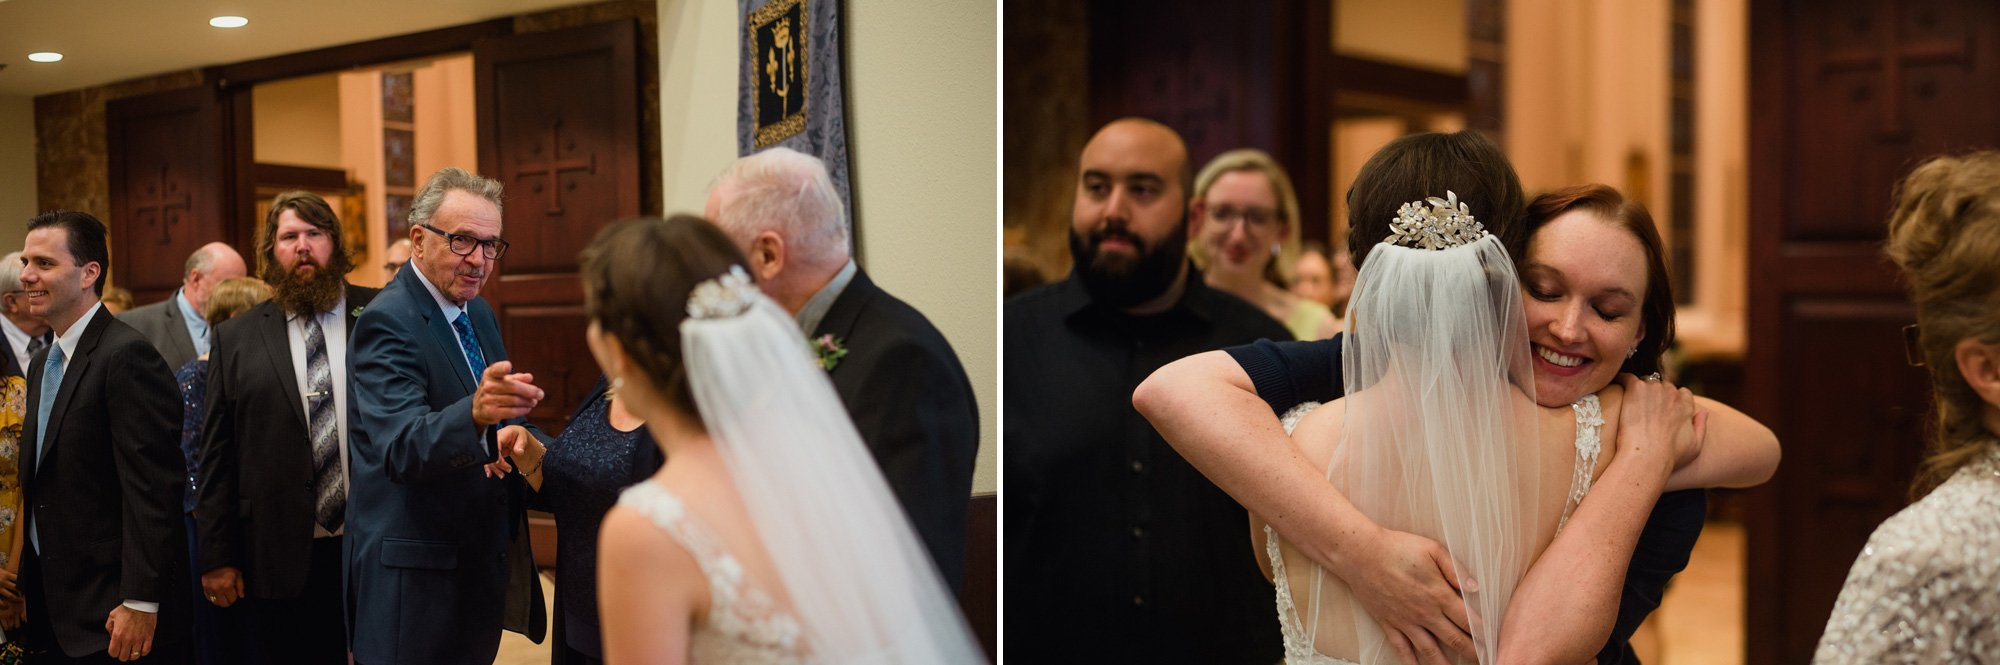 wedding ceremony reactions, st. louis king of france catholic wedding ceremony reaction photos, documentary wedding photography, emotional reaction wedding photography in austin